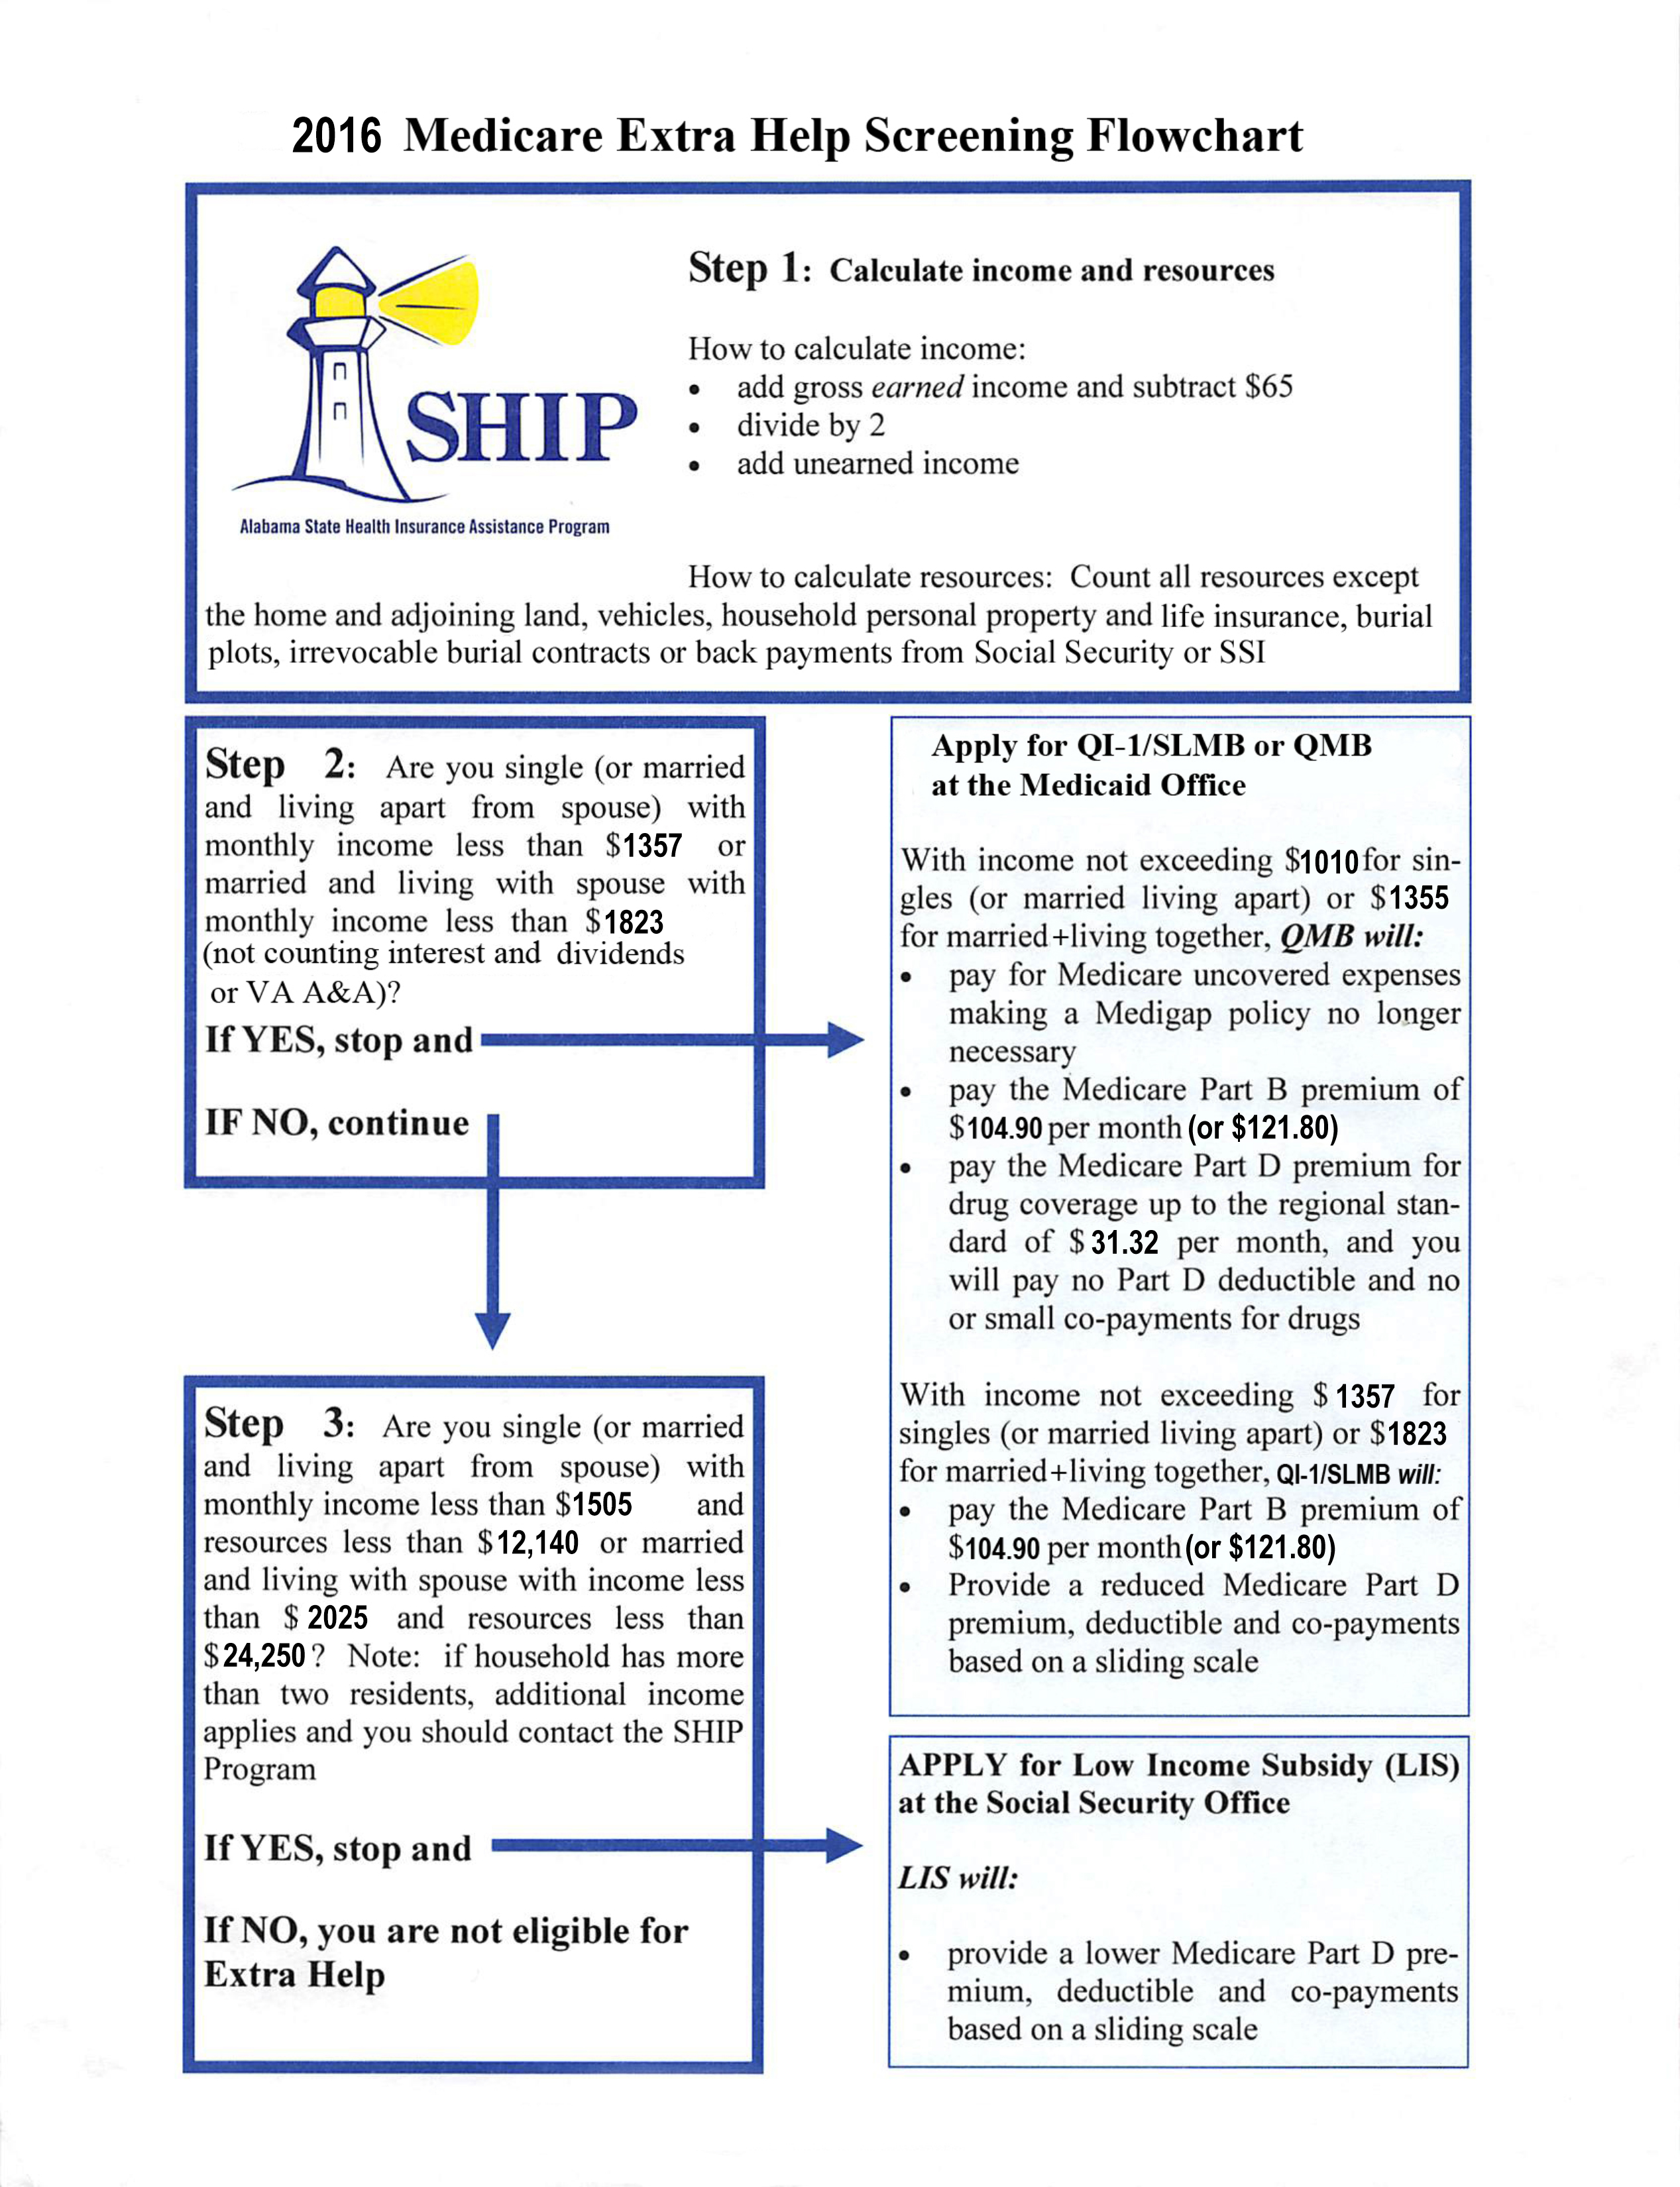 2016 Msp And Lis Screening Flow Chart Jan Neal Law Firm Llc Practice Requirements  How To